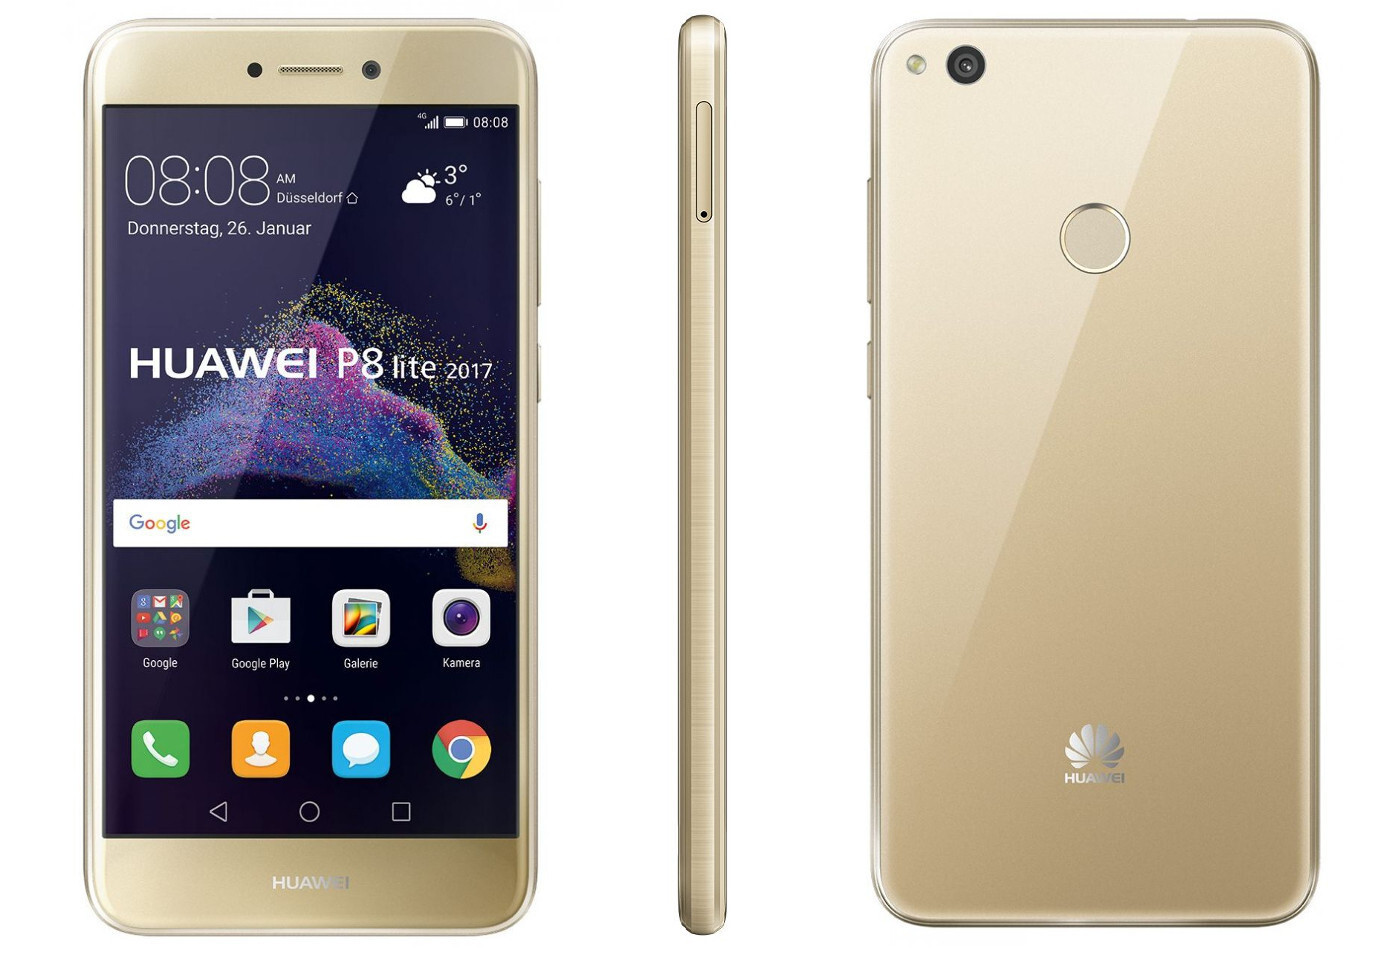 Huawei P8 Lite  2017  Coming To The Uk On February 1  Priced To Sell At  U00a3185